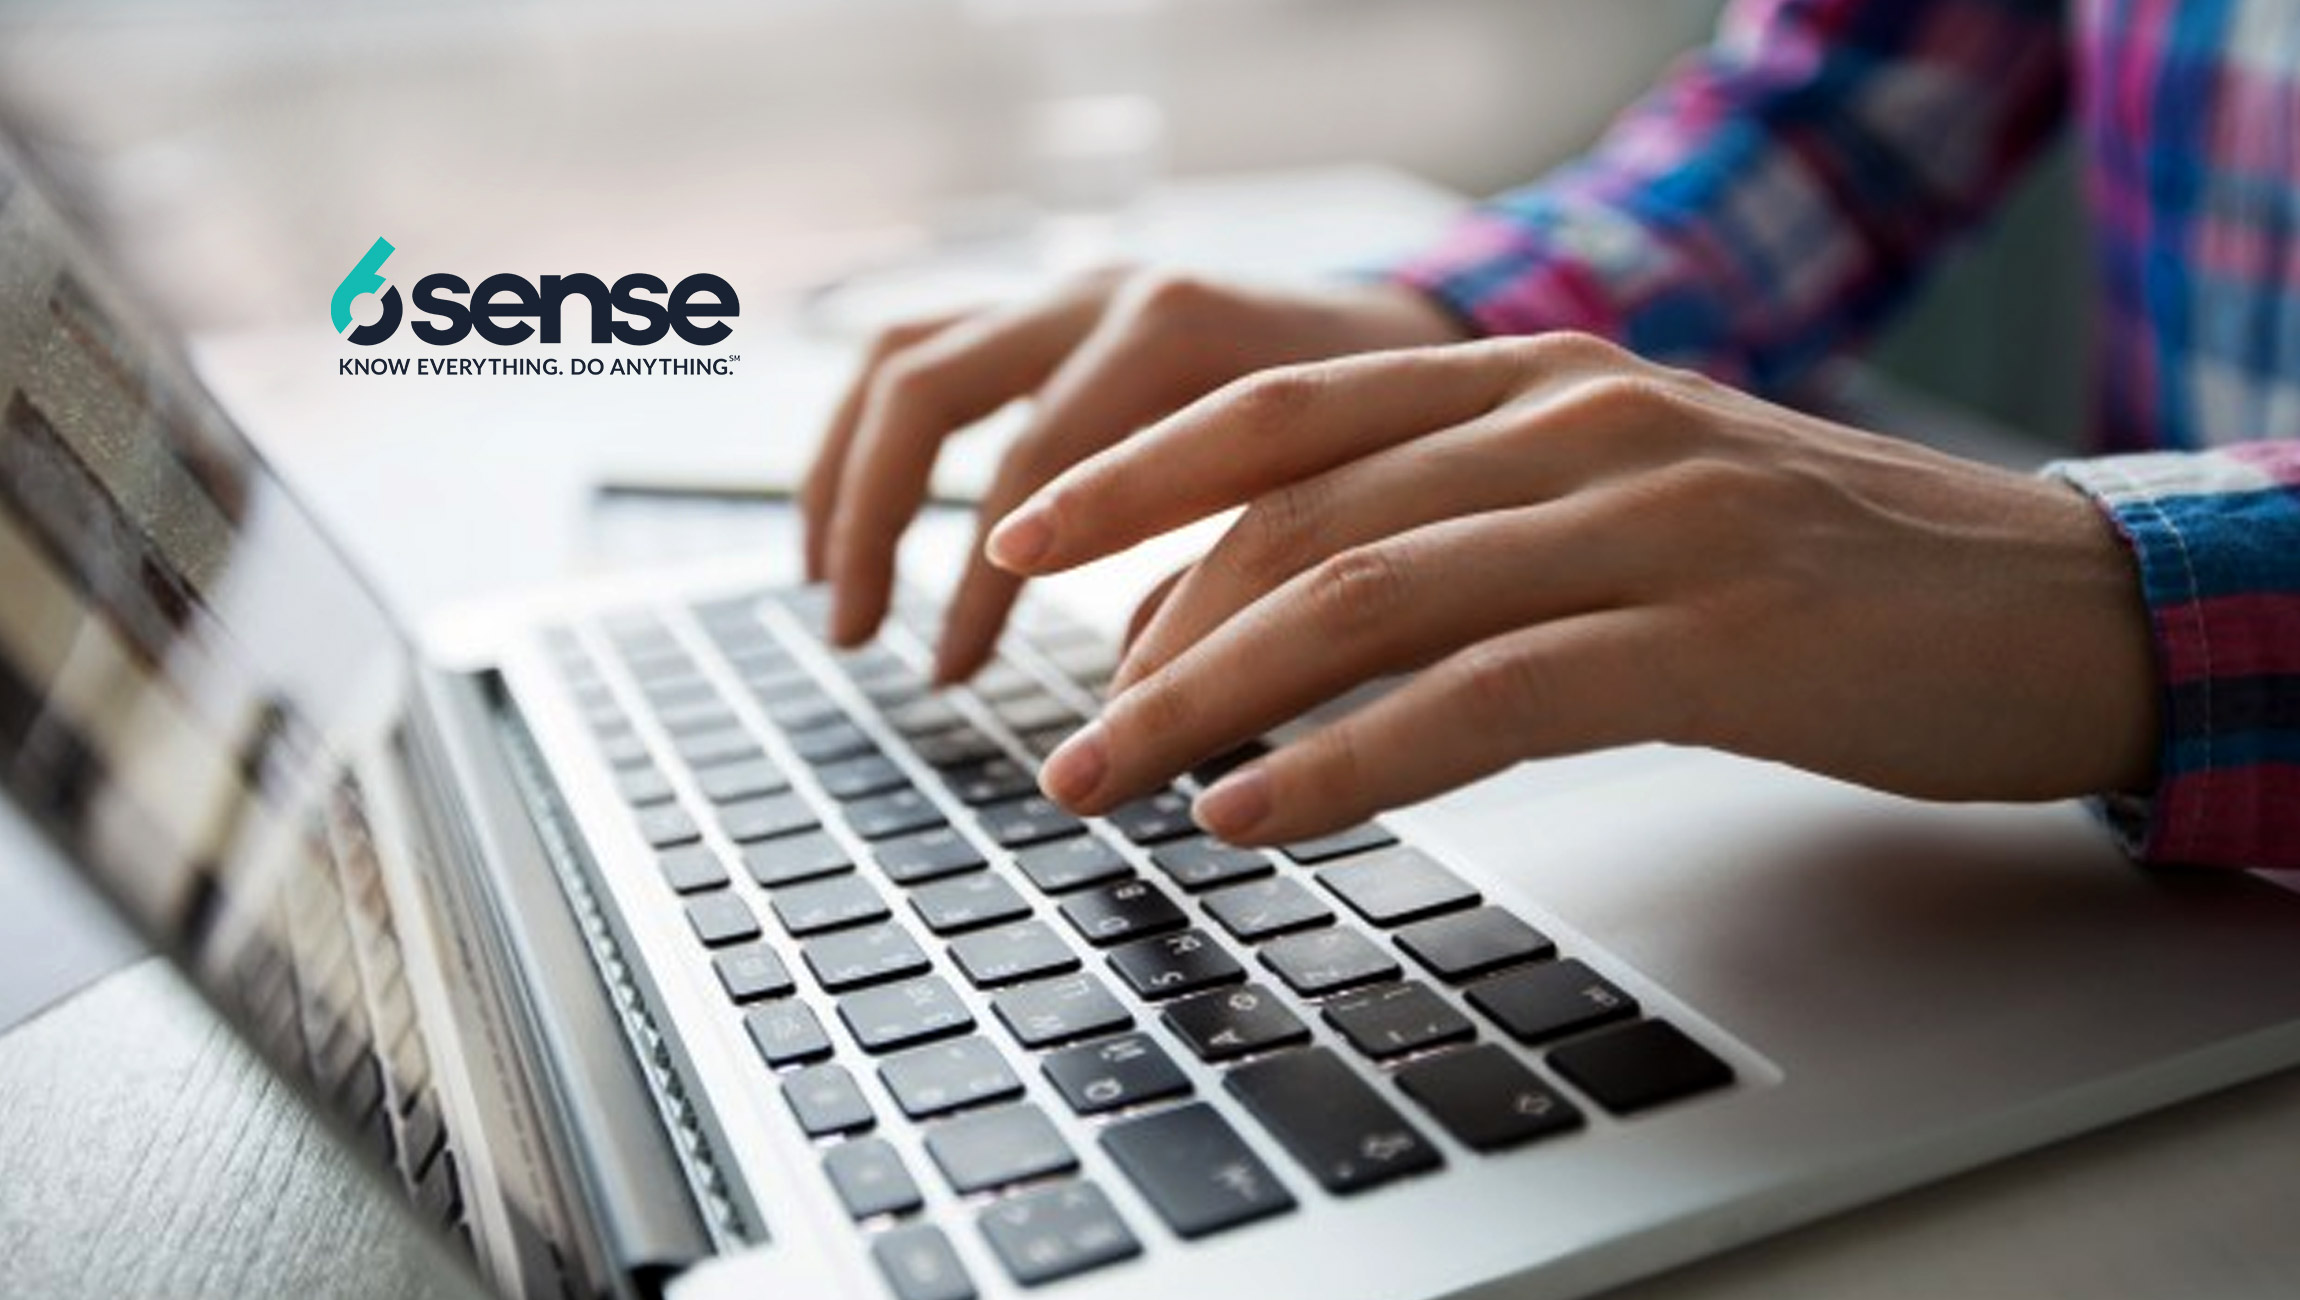 6sense Secures $27 Million to Advance Bold Vision in B2B and ABM